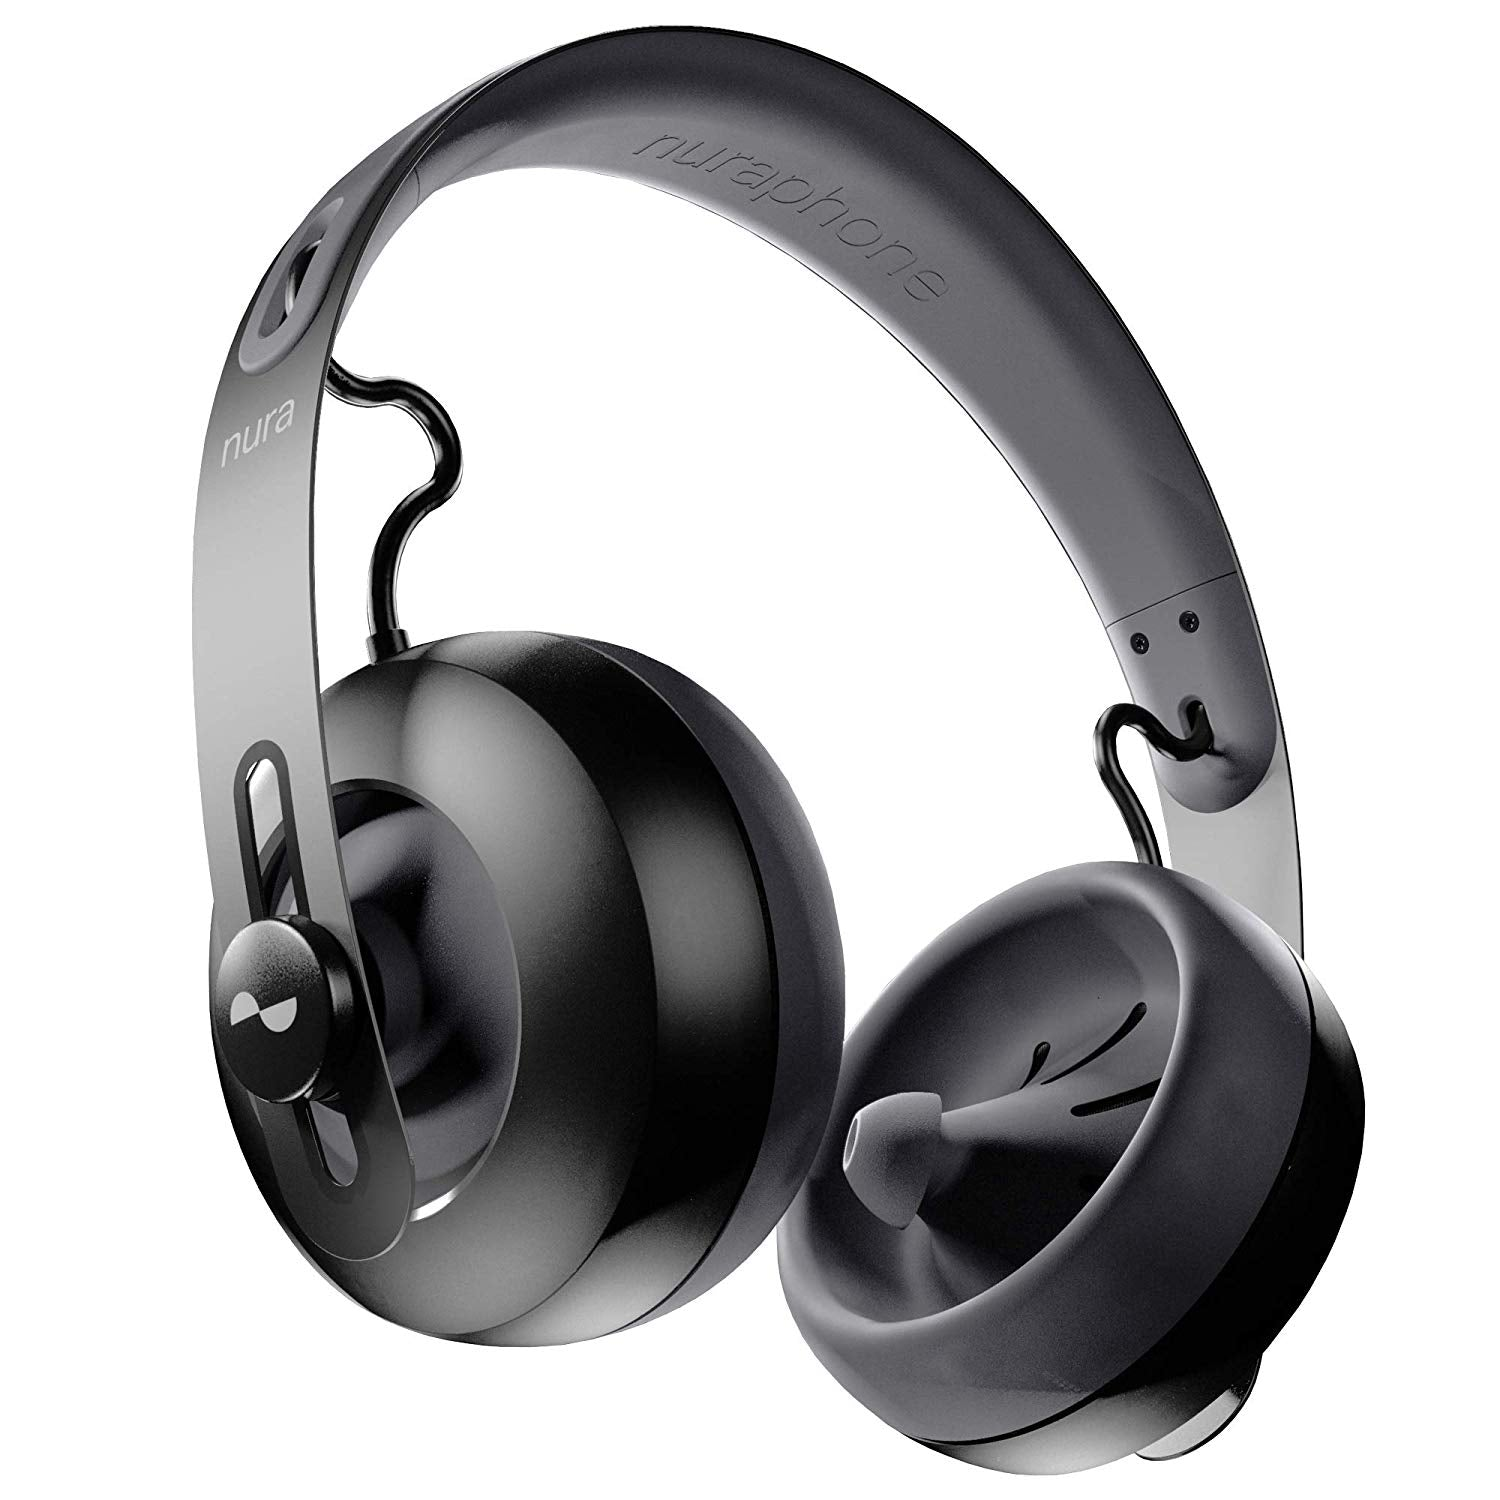 Nuraphone/G2 Wireless Headphones